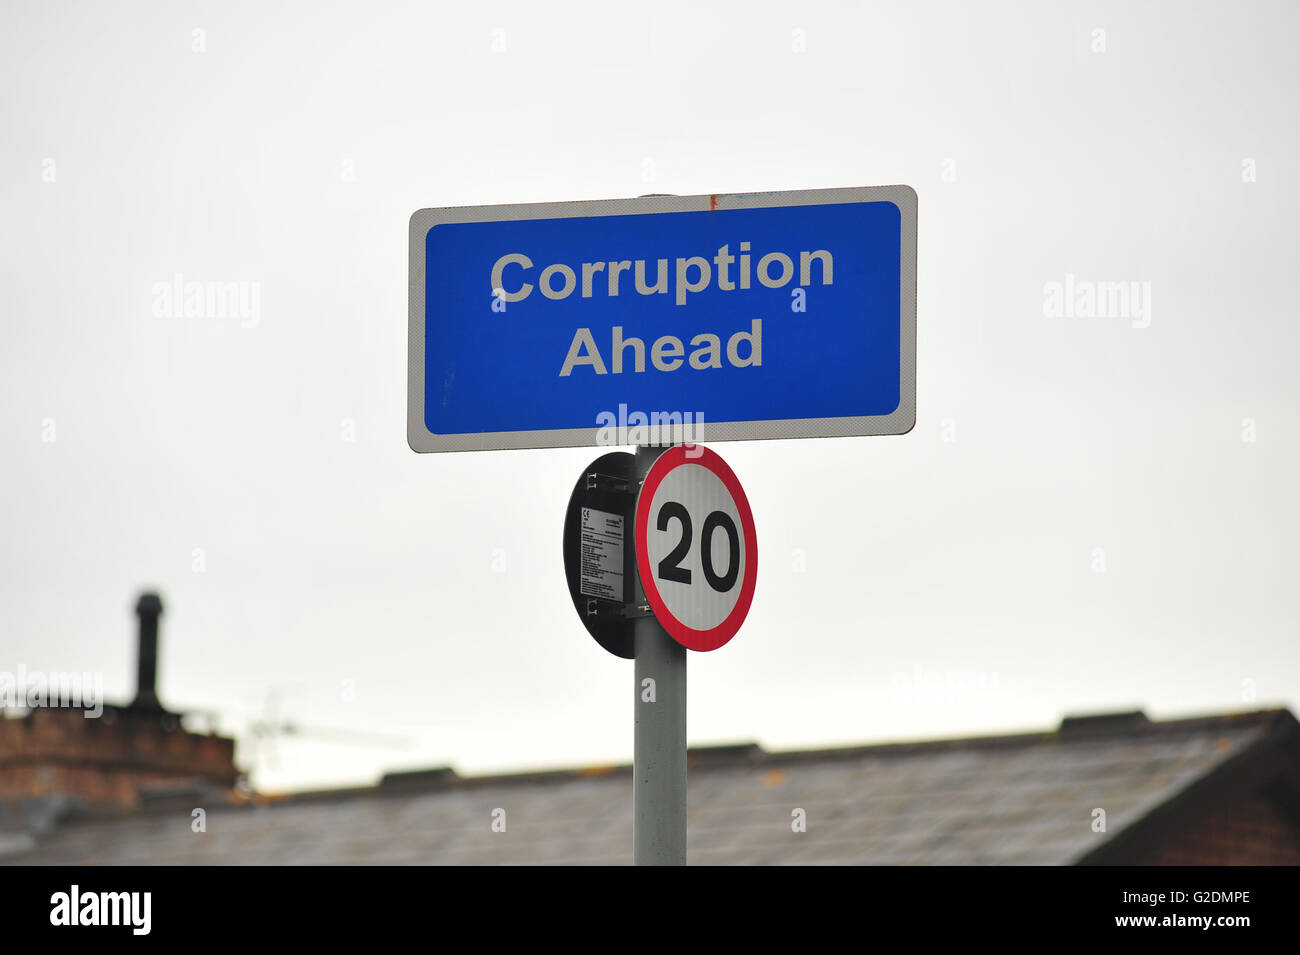 Corruption Ahead on a sign in Bristol in the UK. - Stock Image